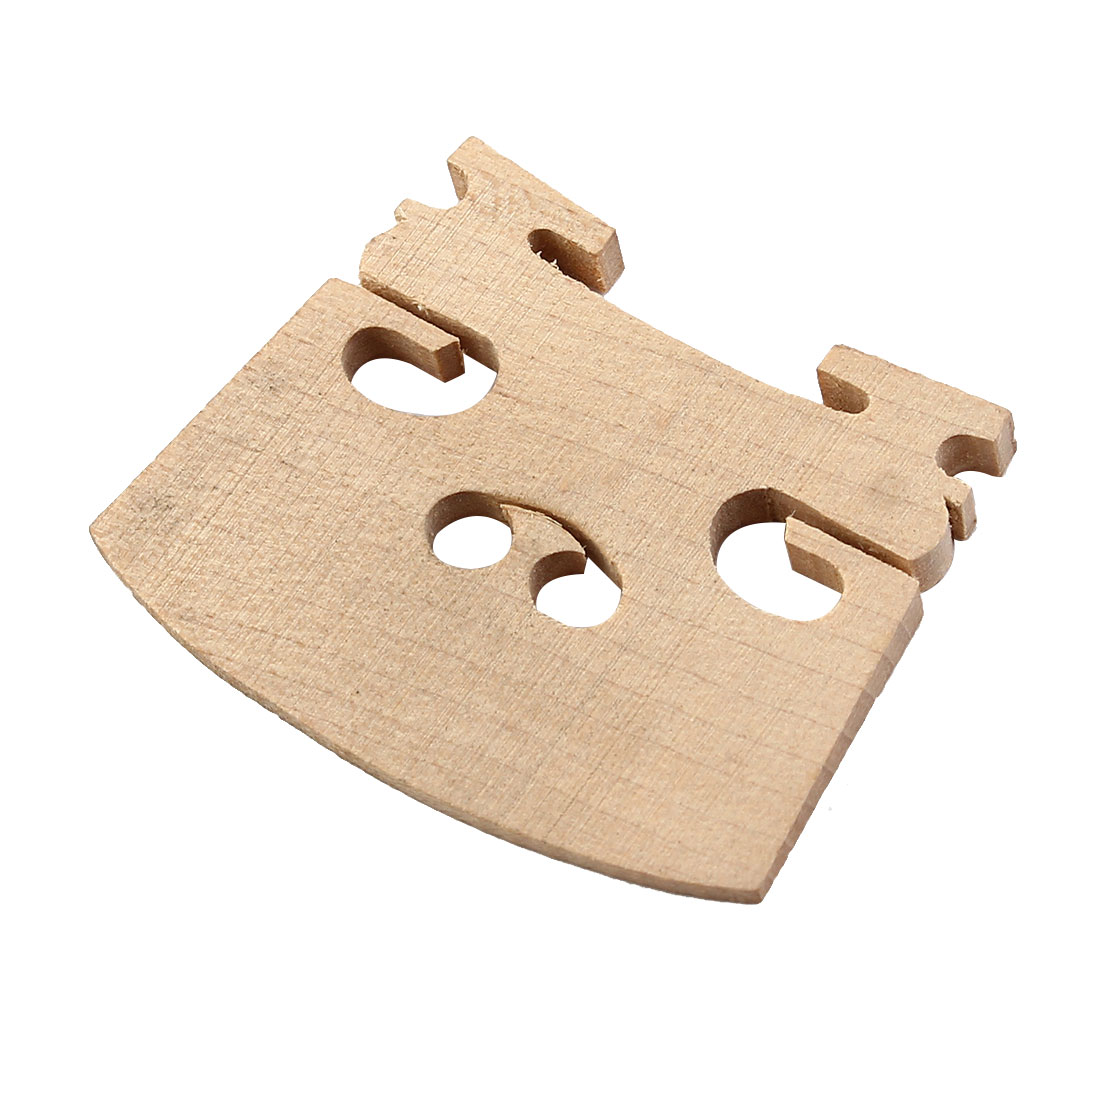 Replacement Wooden Bridge for 1/2 Acoustic Violin Fiddle